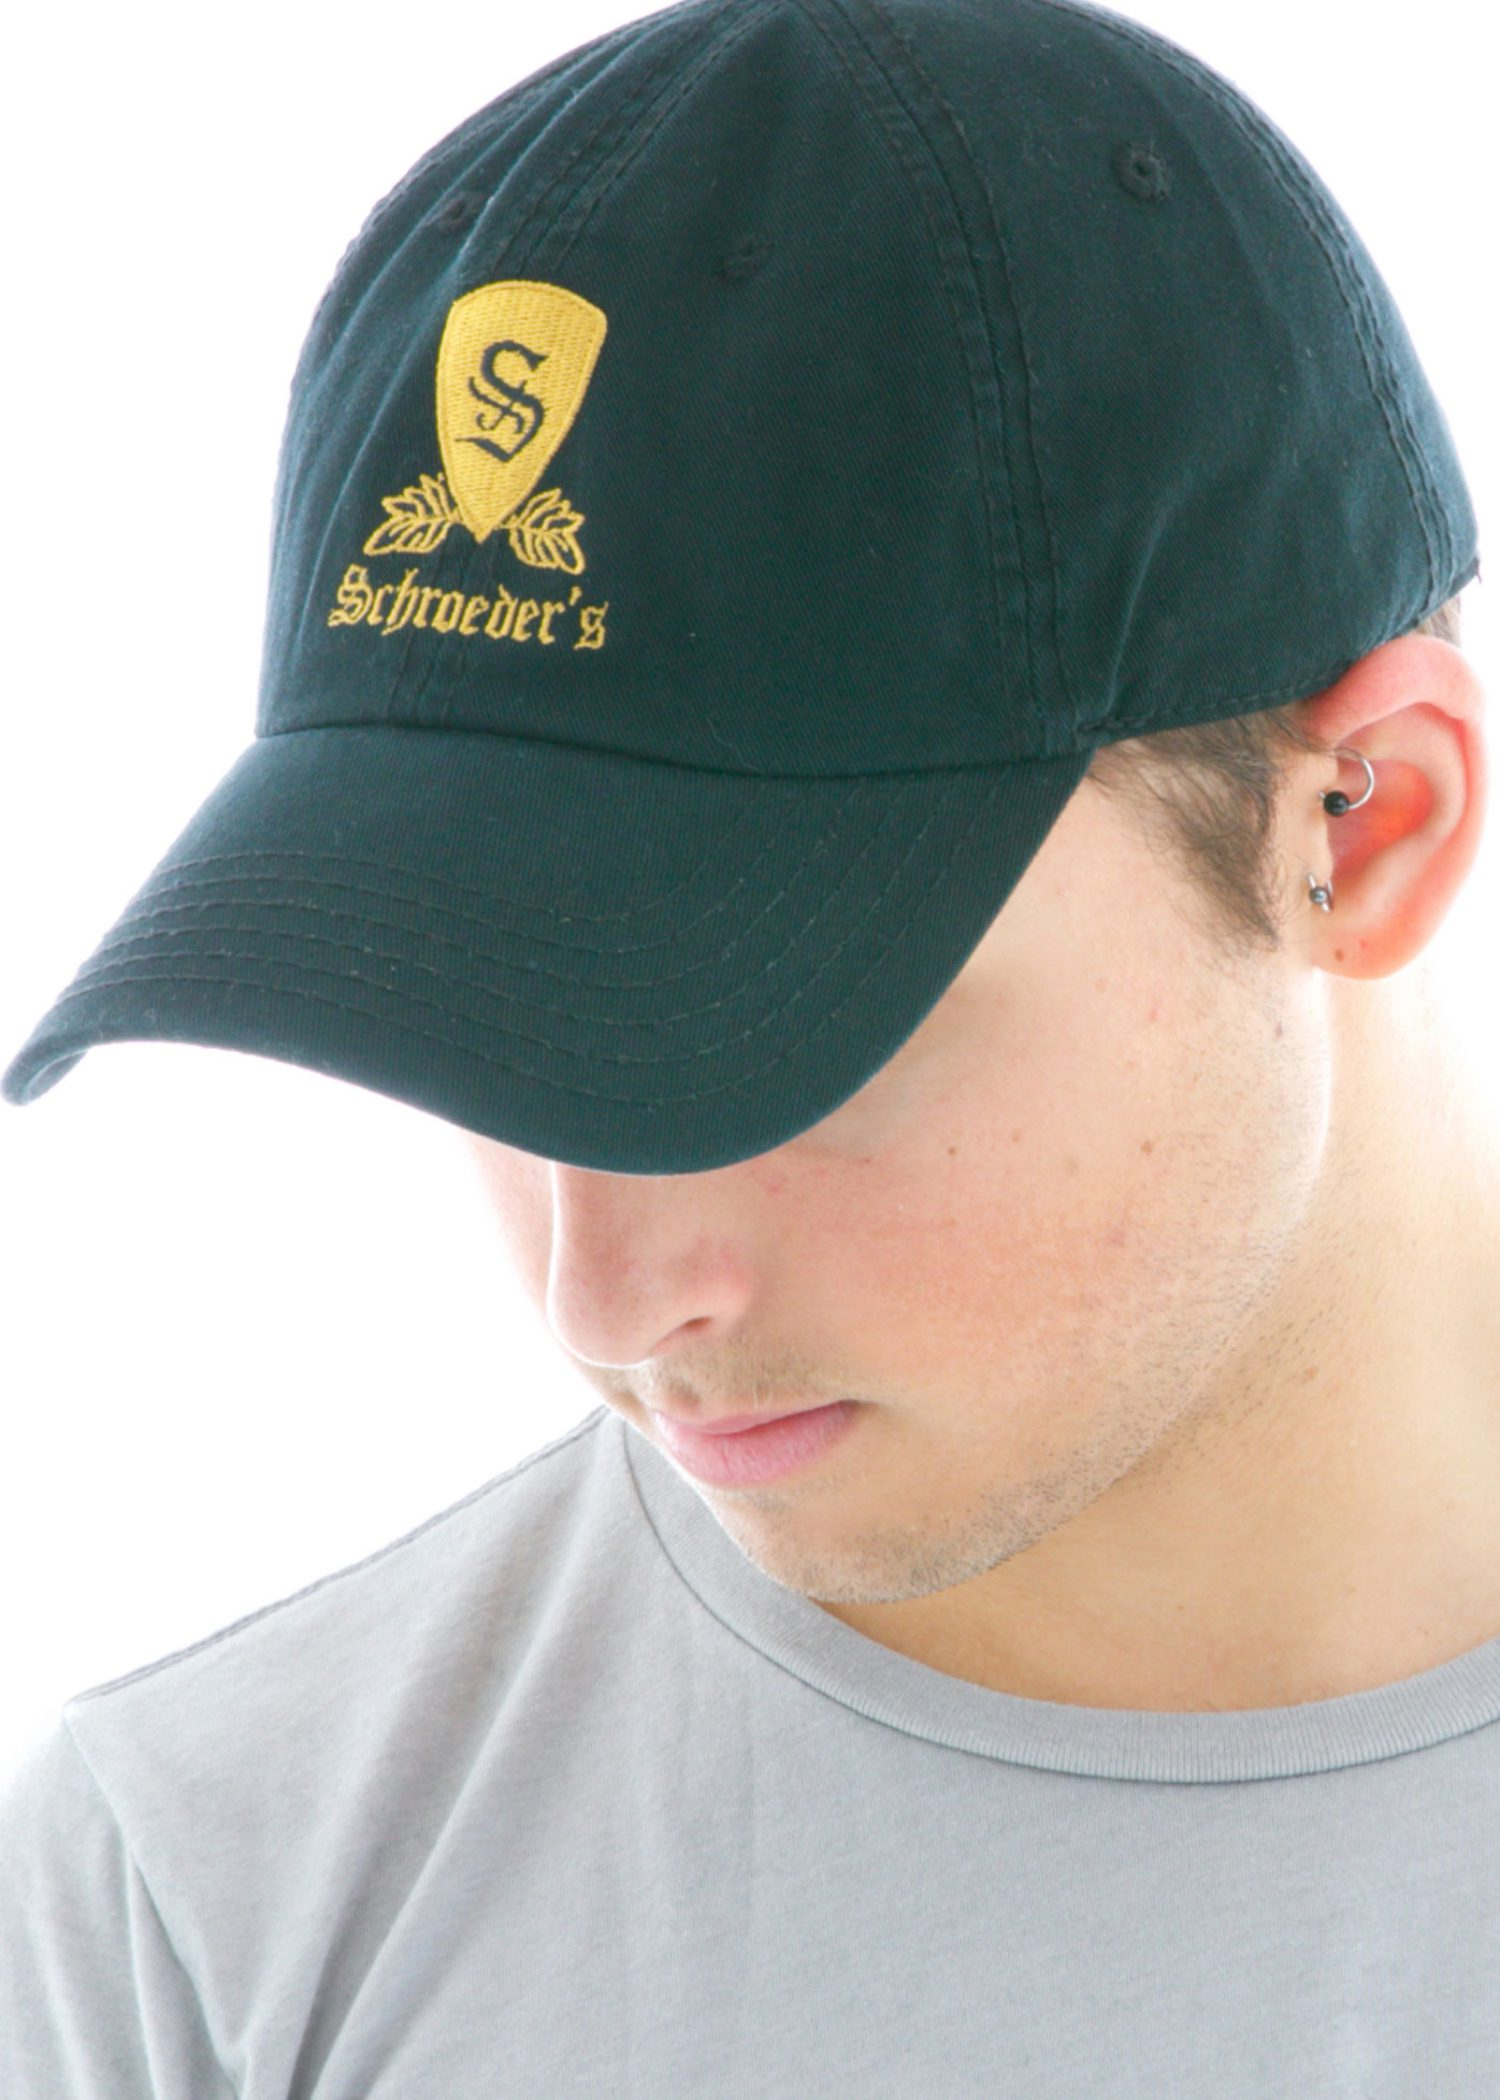 Custom Dad Hats with Buckle Back